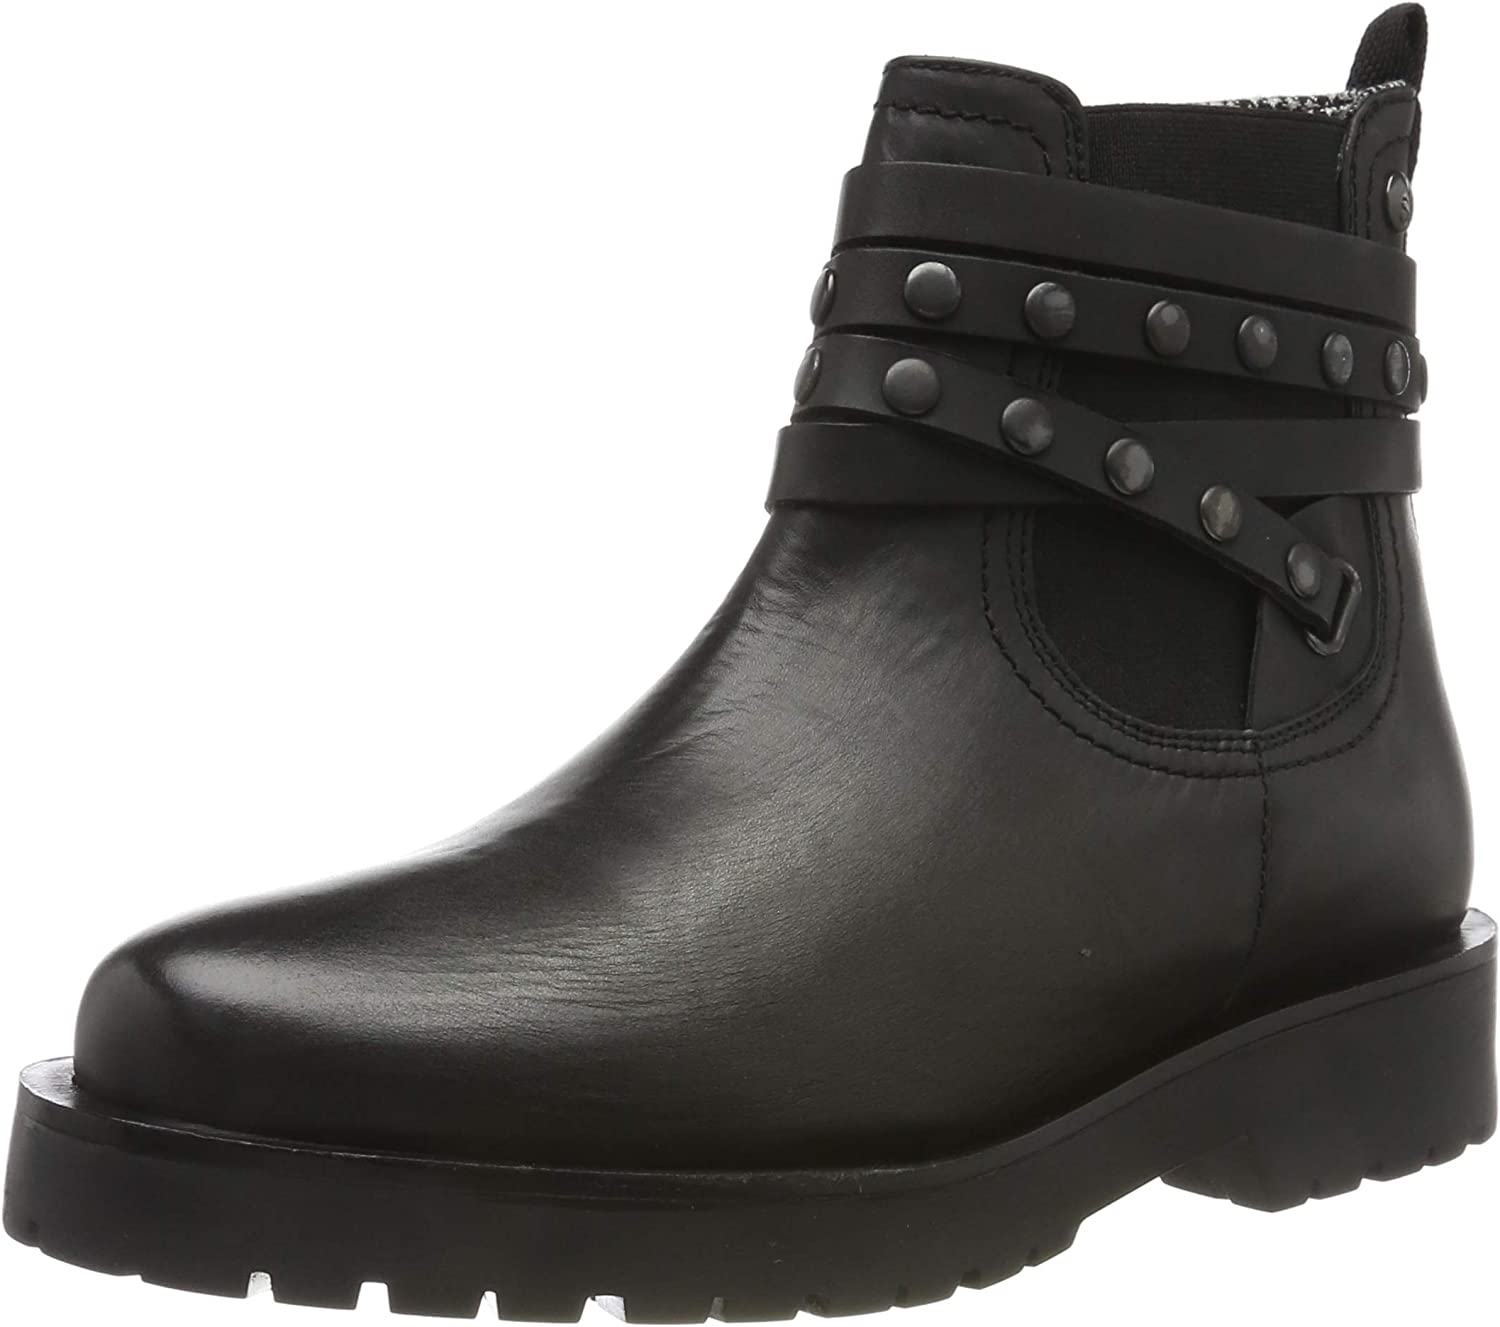 s.Oliver Women's 25% OFF Many popular brands Ankle Boots